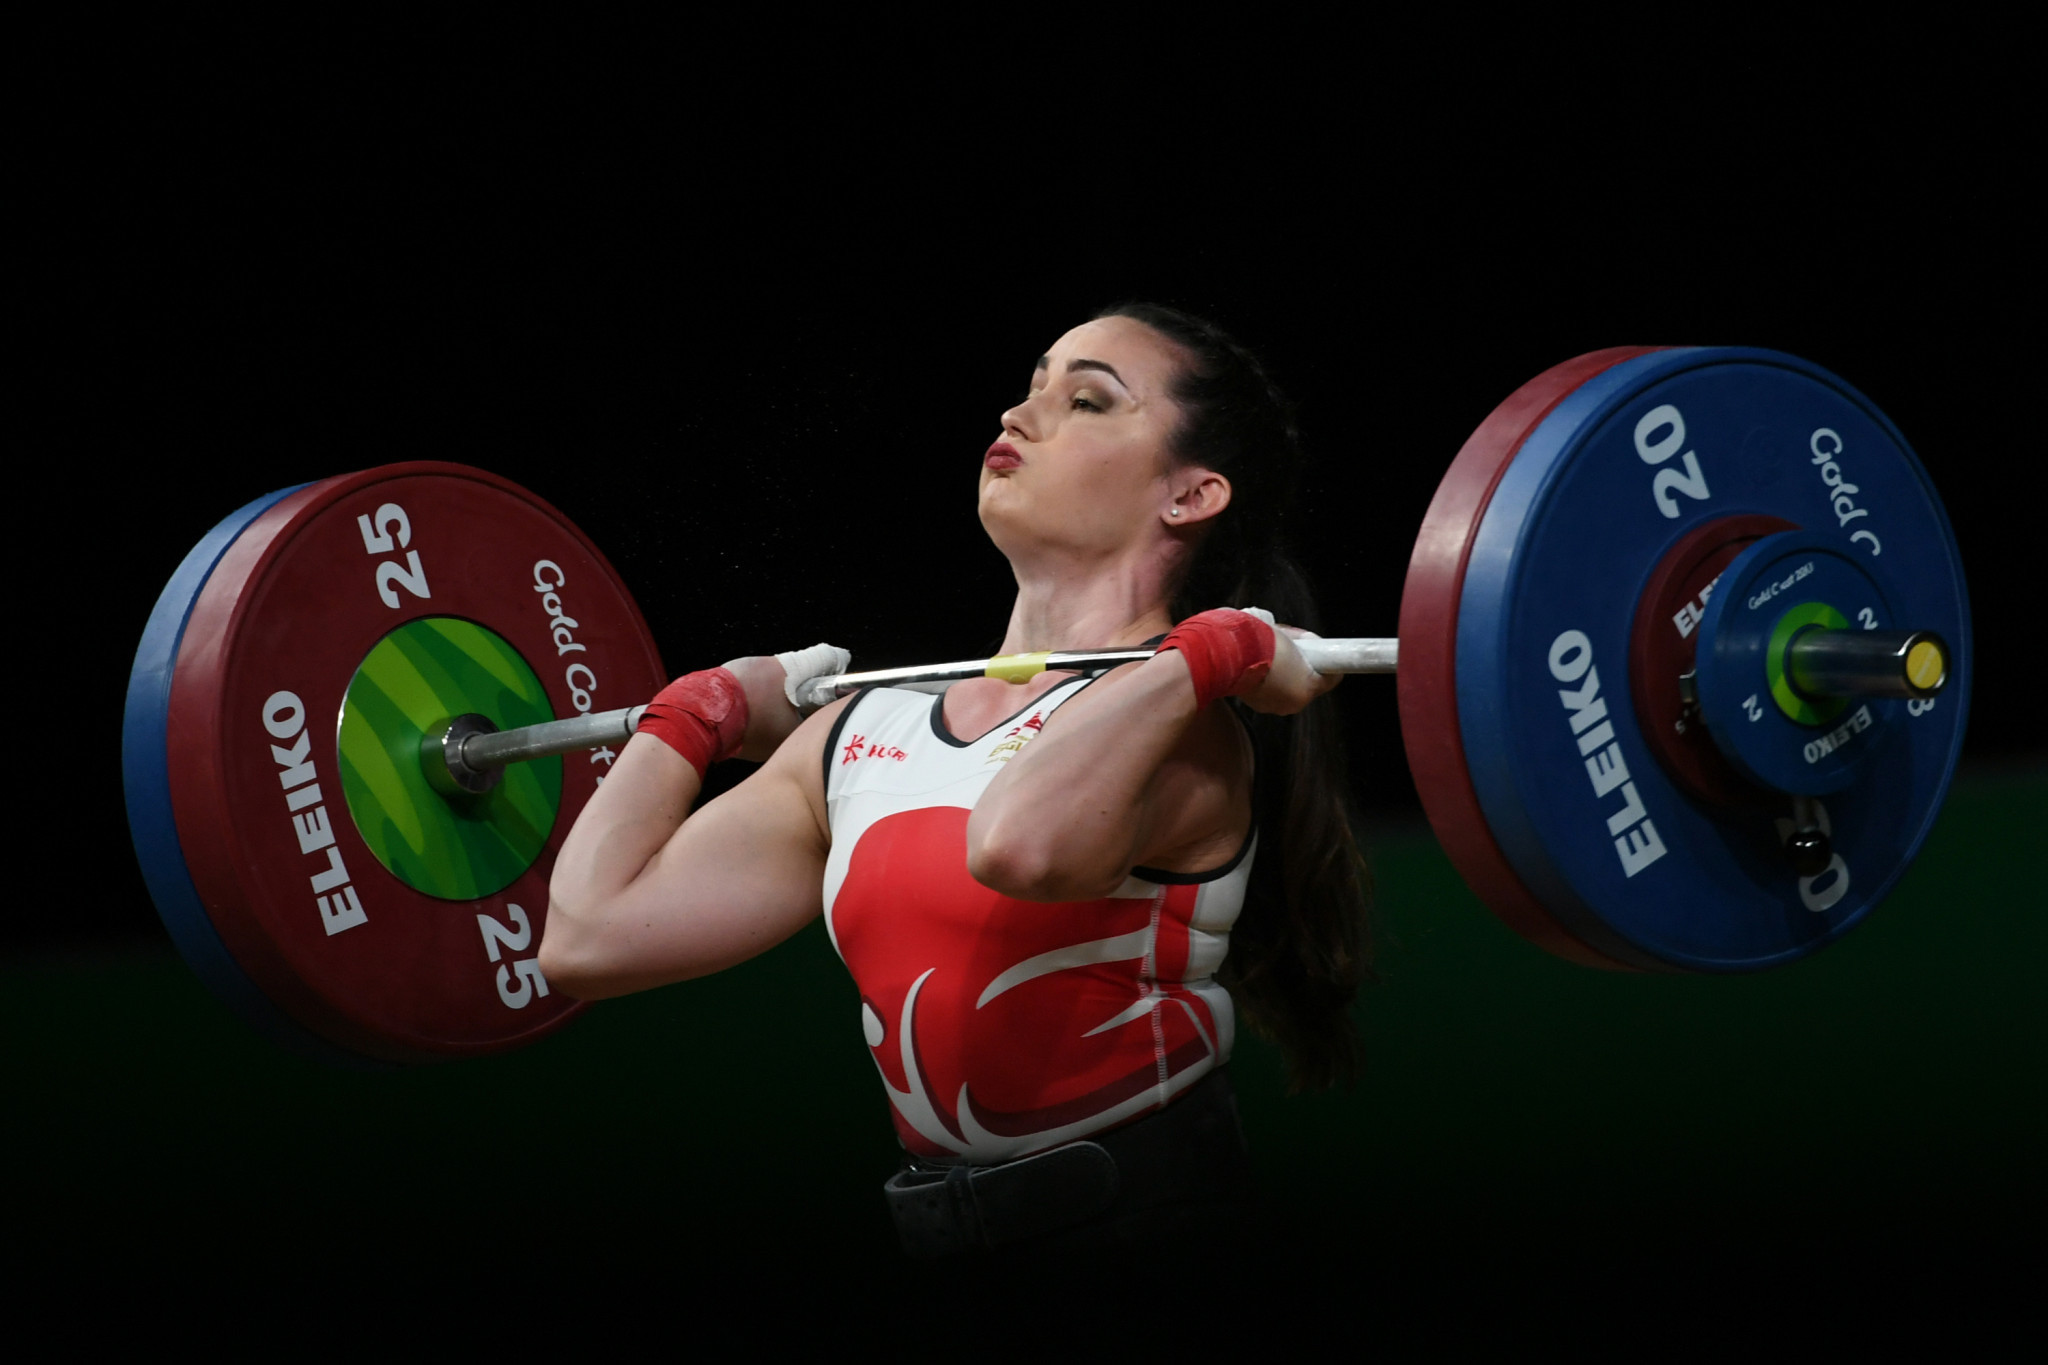 Sarah Davies is another weightlifter impacted by a lack of funding ©Getty Images